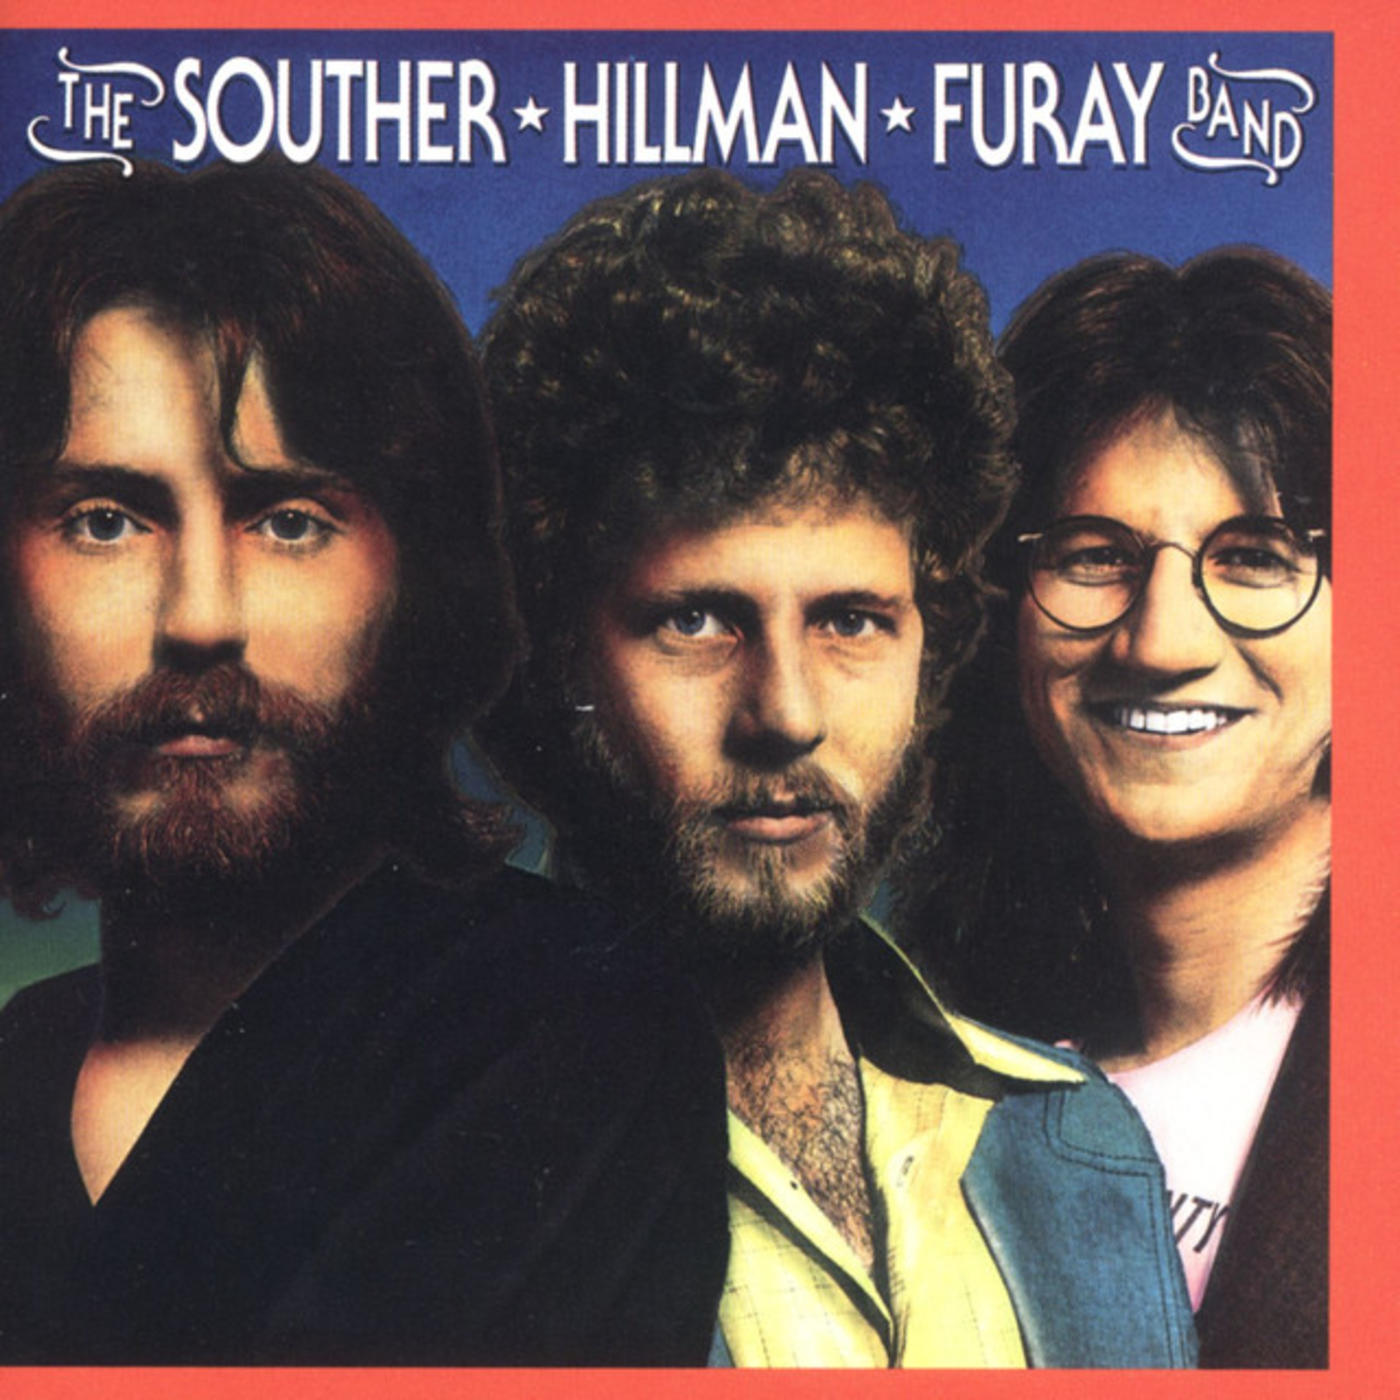 Spotlighting the Sotther-Hillman-Furay Band